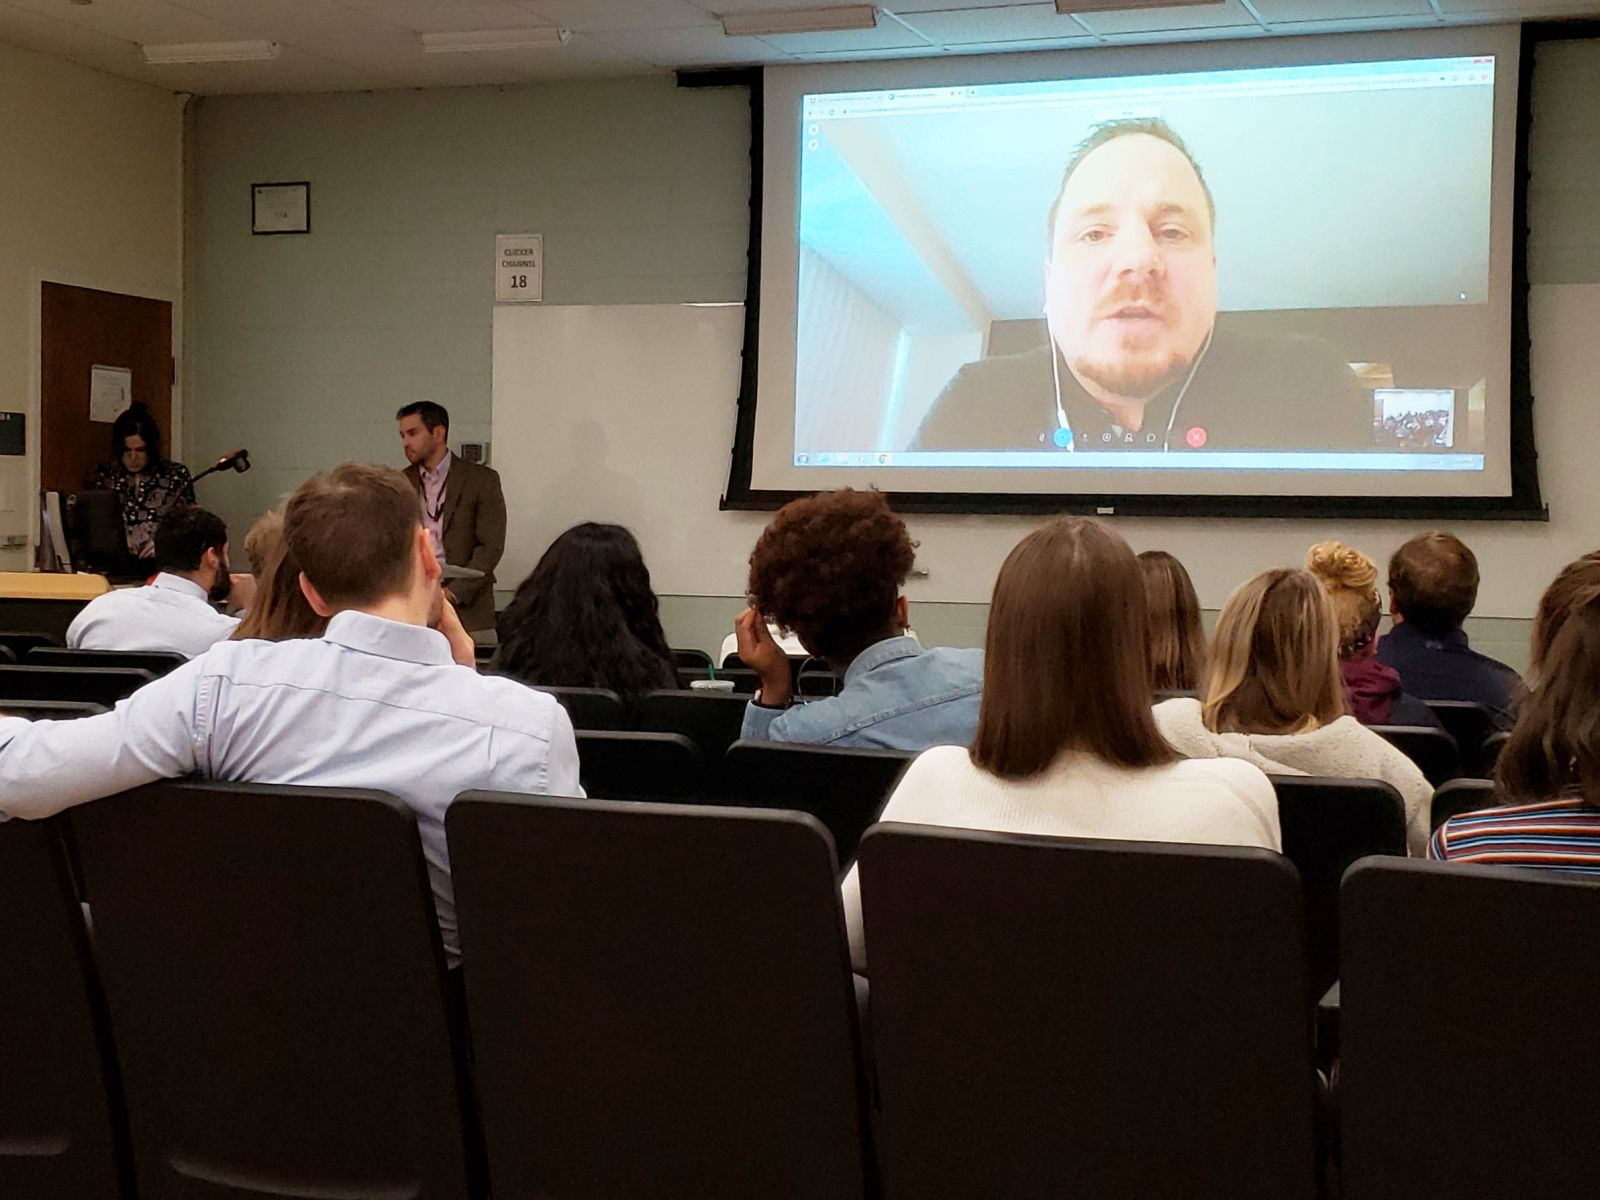 Brad Galloway delivers a remote lecture to START students and researchers